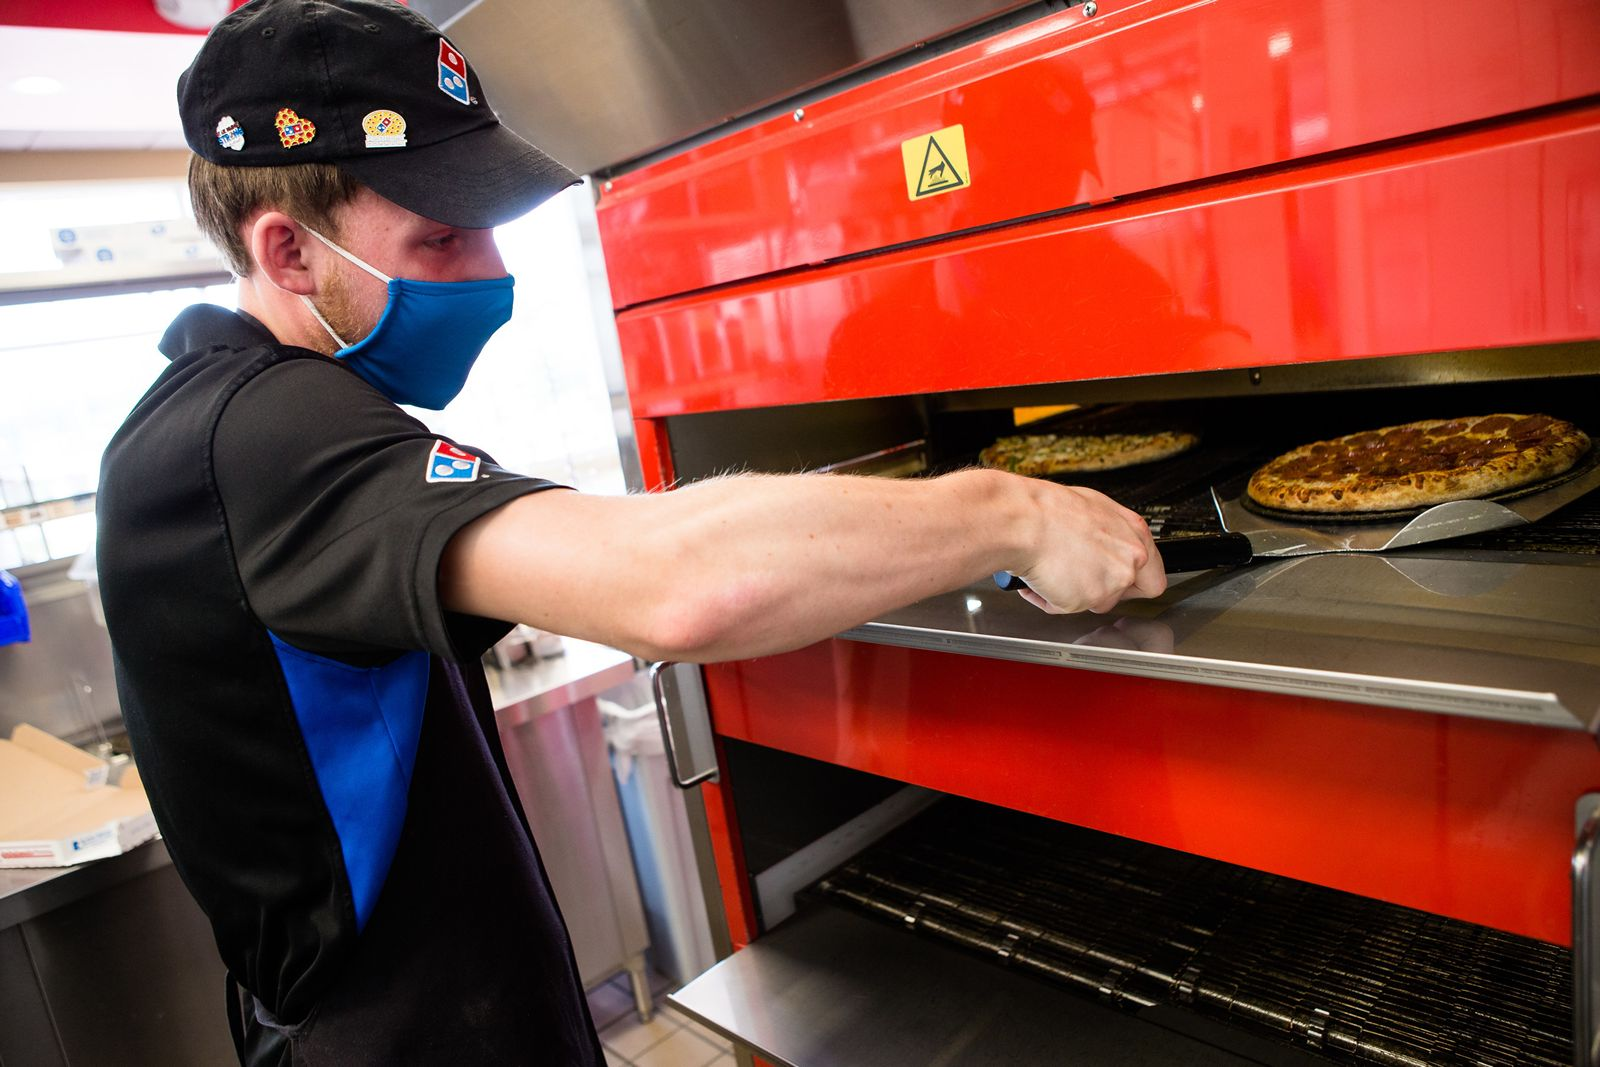 Domino's to Hire 20,000 New Team Members to Help Busy Stores Feed Hungry Families Nationwide